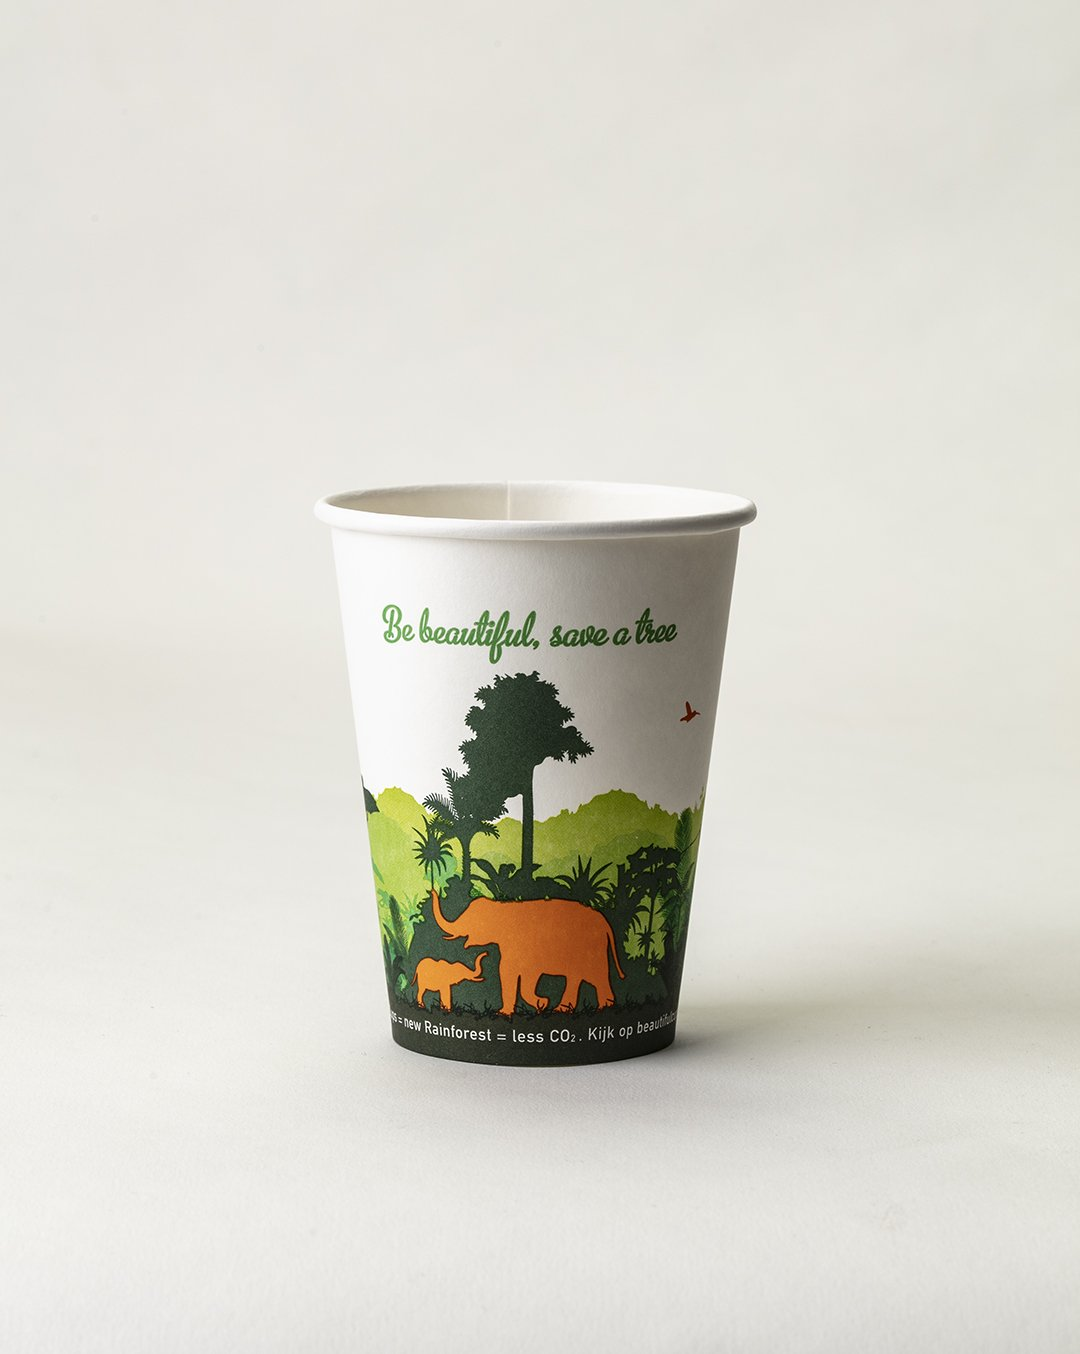 Go To Www Bing Comhella: To Go Kartonnen Koffiebekers 12 Oz